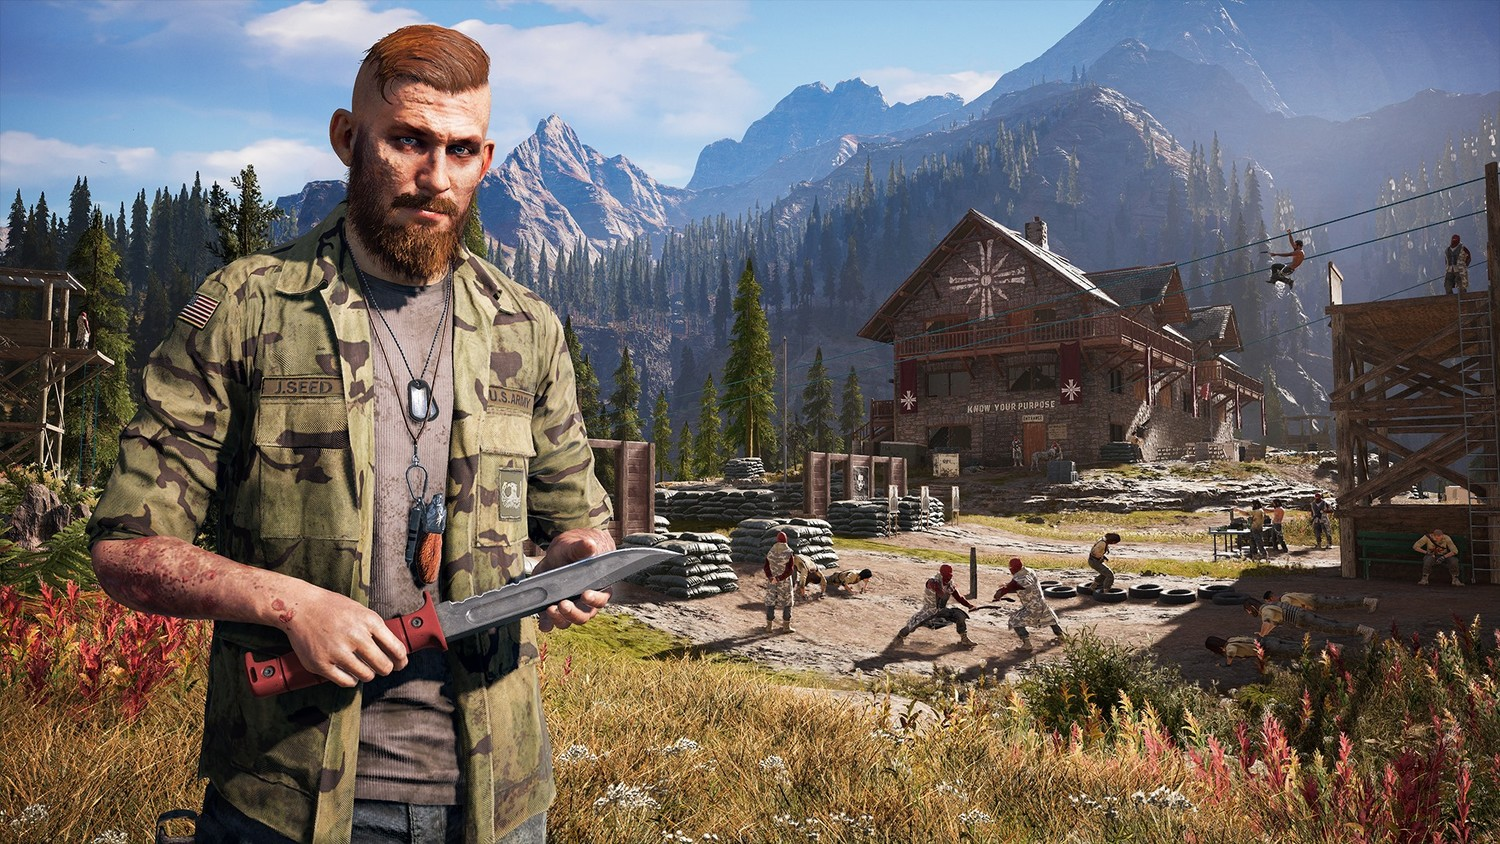 Screenshot for the game Far Cry 5: Gold Edition [v 1.011 + DLCs] (2018) download torrent RePack